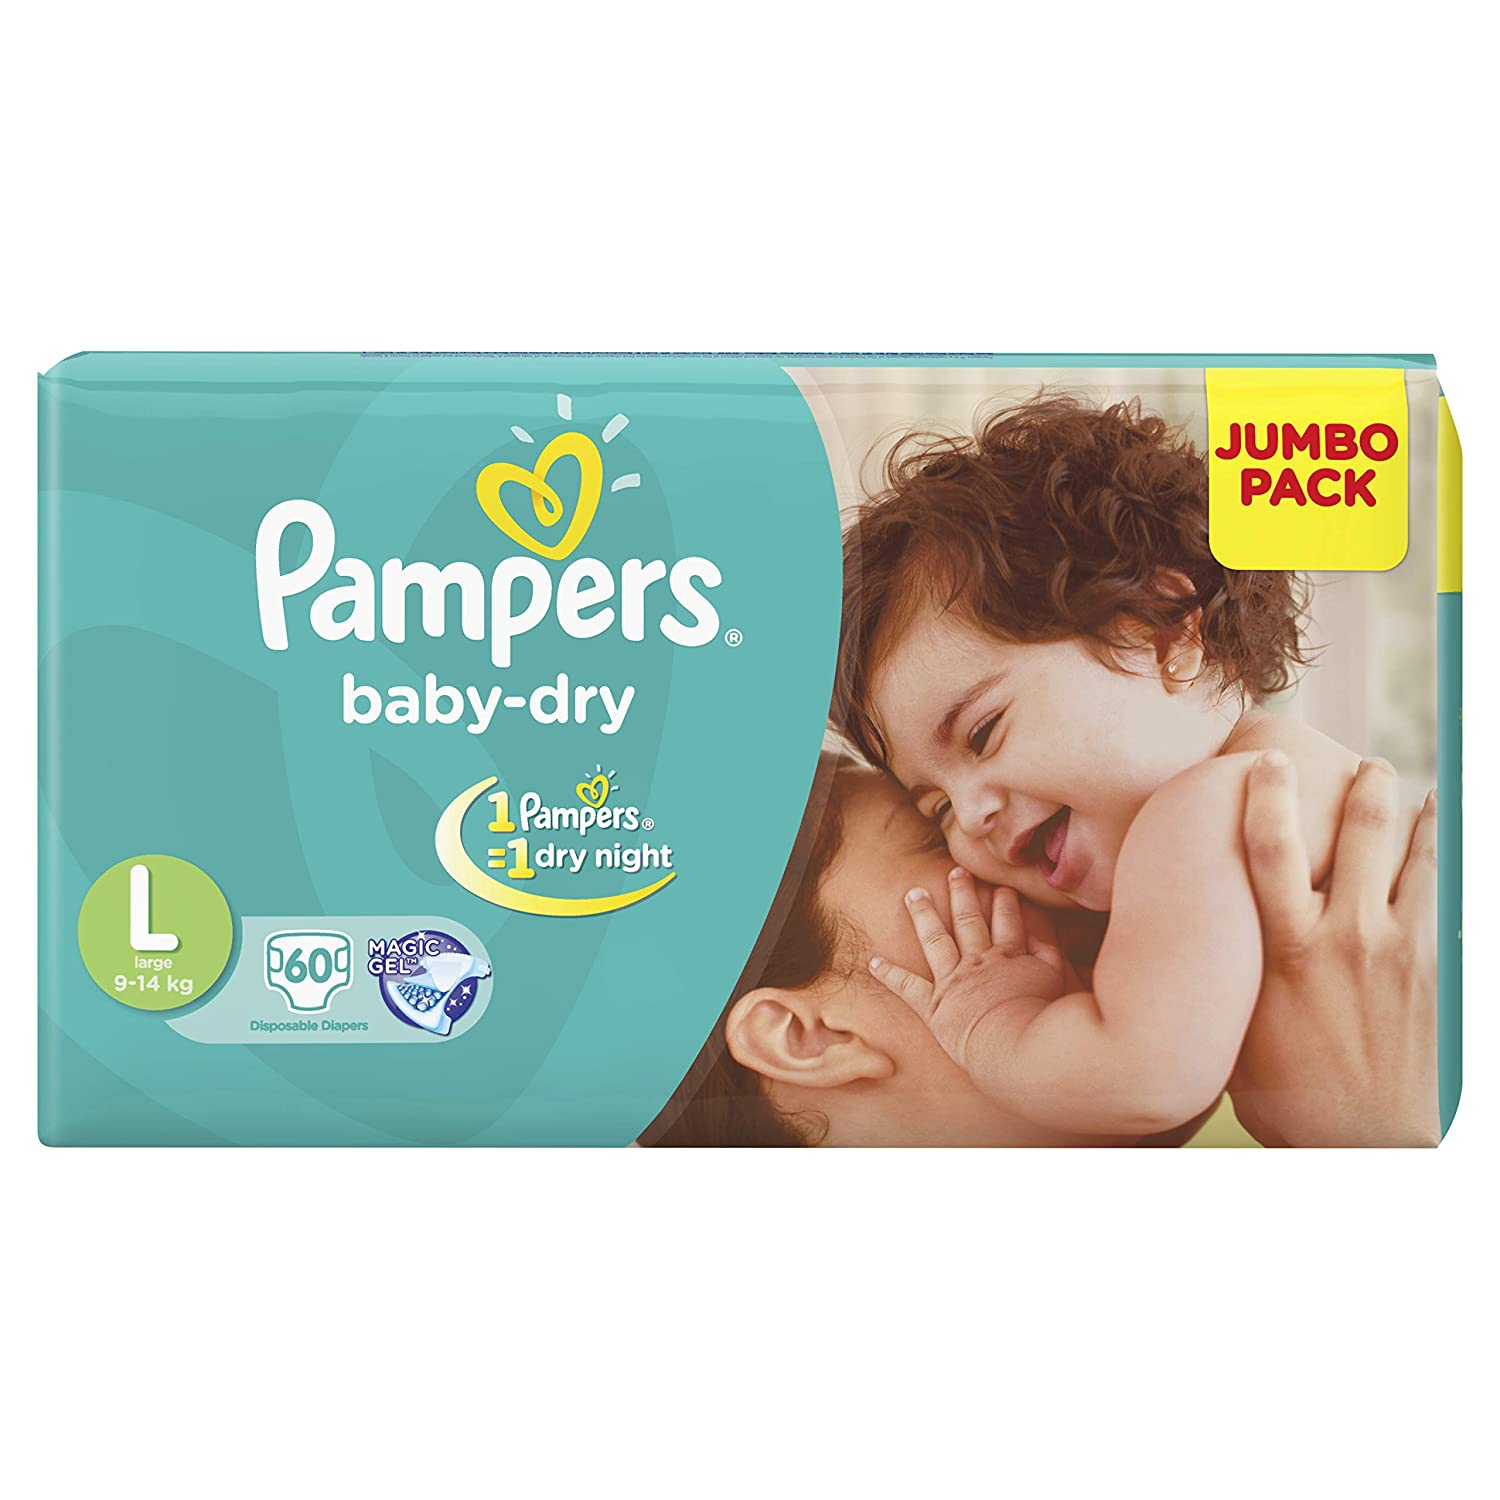 Pampers Baby Dry Diapers, L- 60 Count